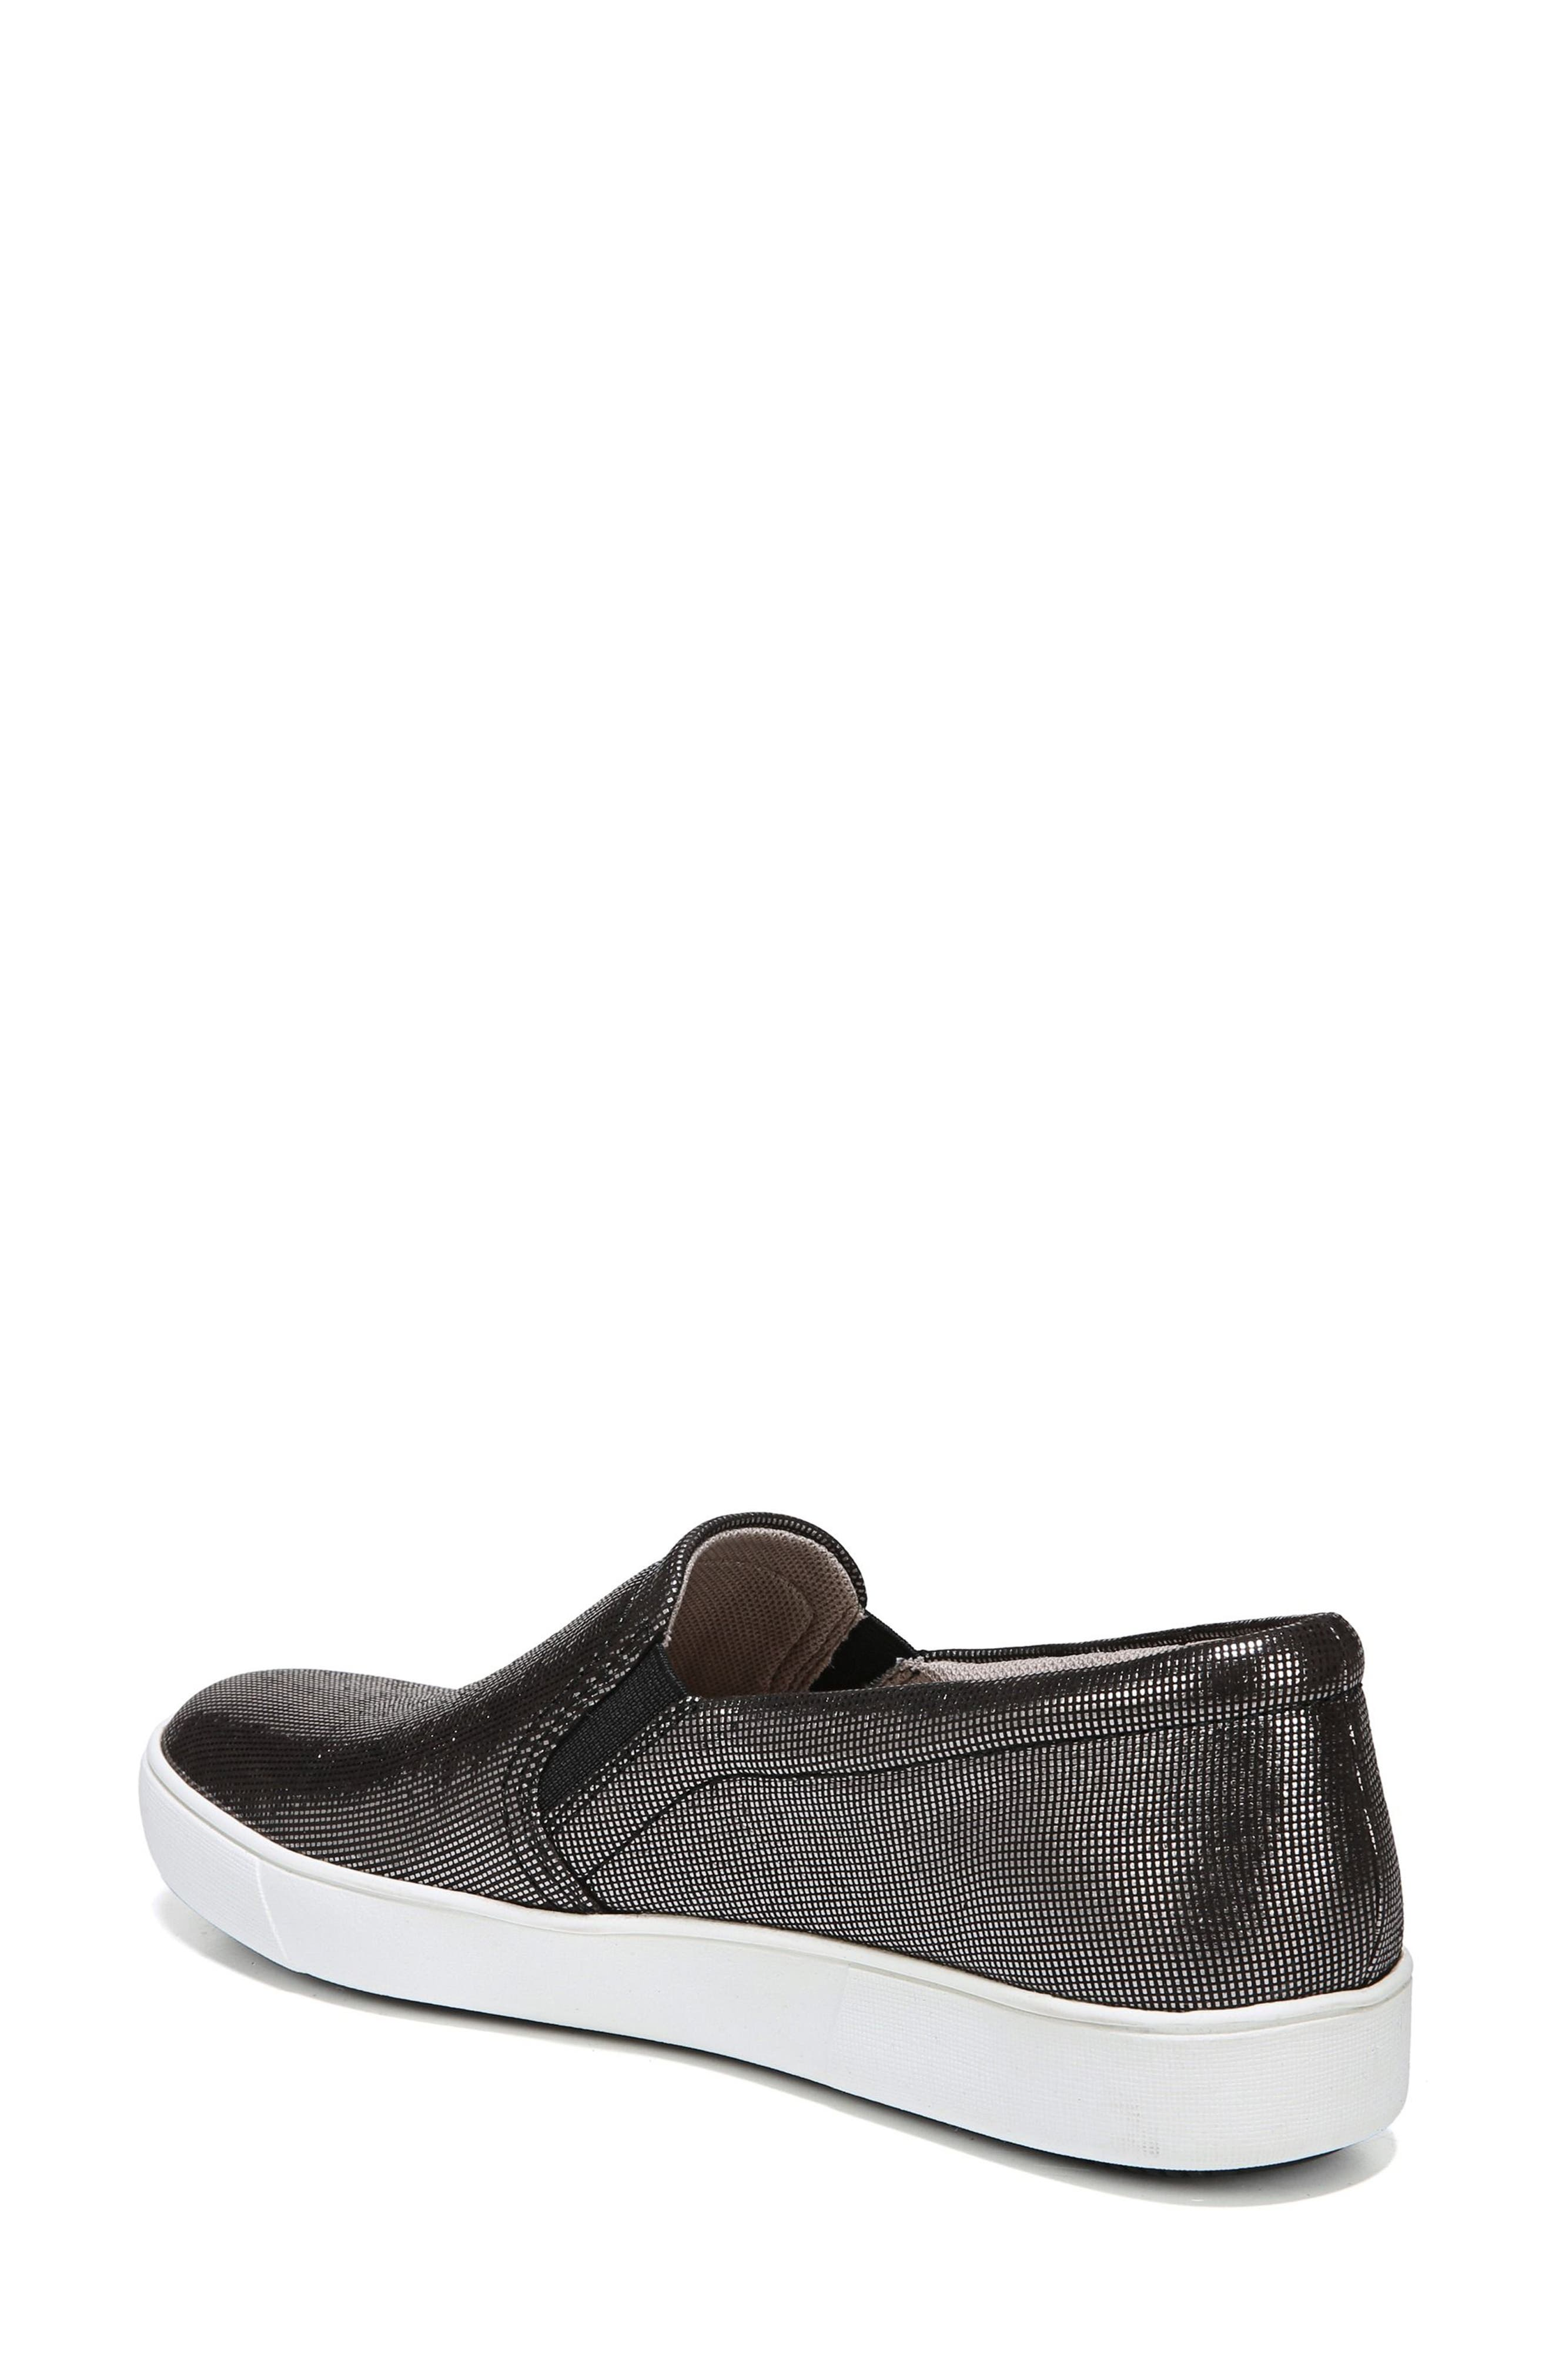 Marianne Slip-On Sneaker,                             Alternate thumbnail 2, color,                             DEEP SILVER PRINTED LEATHER